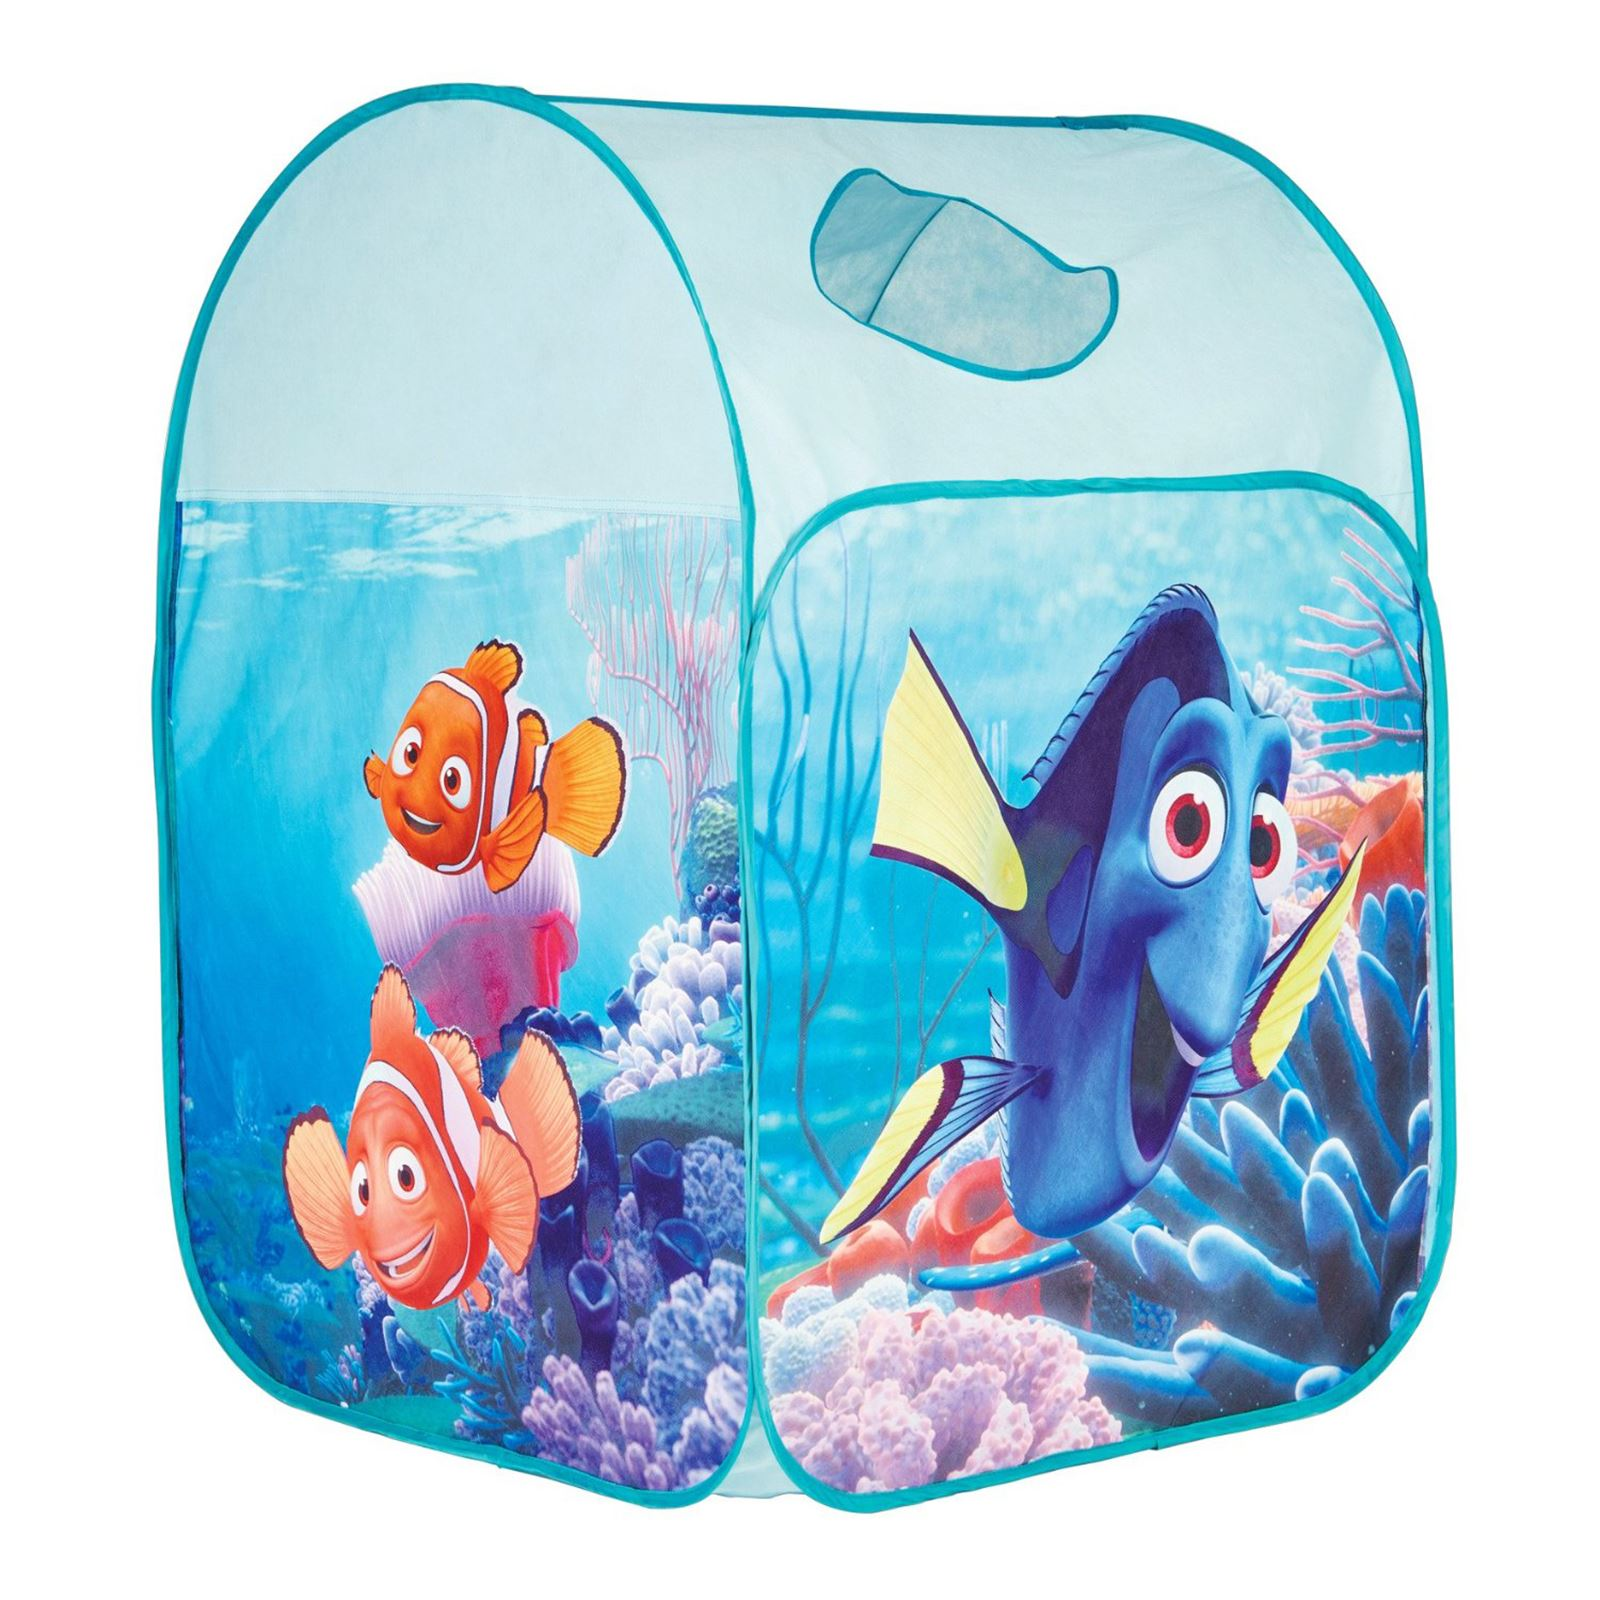 Finding nemo dory pop up wendy tent play house new ebay